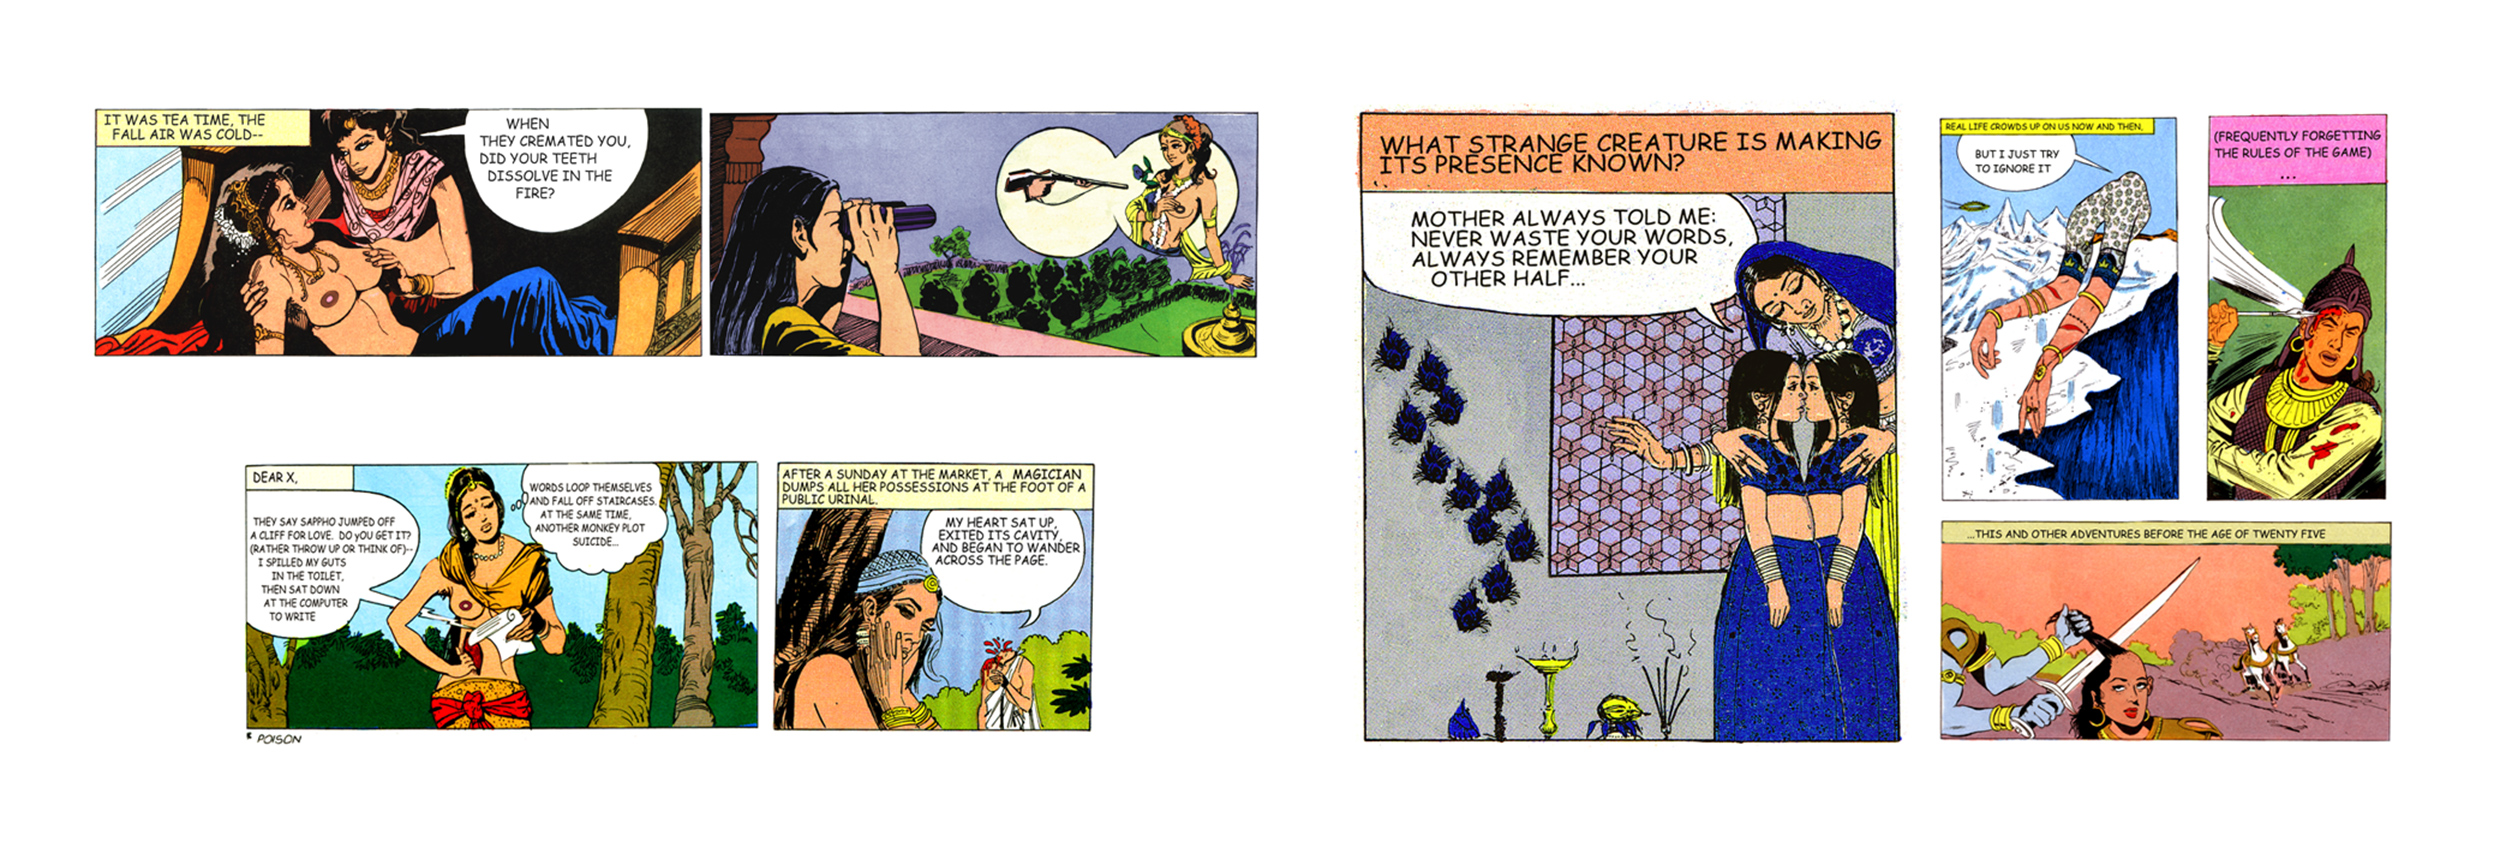 Editions from Tales of Amnesia - <i>Triptych II (Tea time - Dear X, my heart - Mother always told</i>   from <i>Tales of Amnesia</i>), 2002/07. Digital C-prints, edition of 5 (+1 AP).